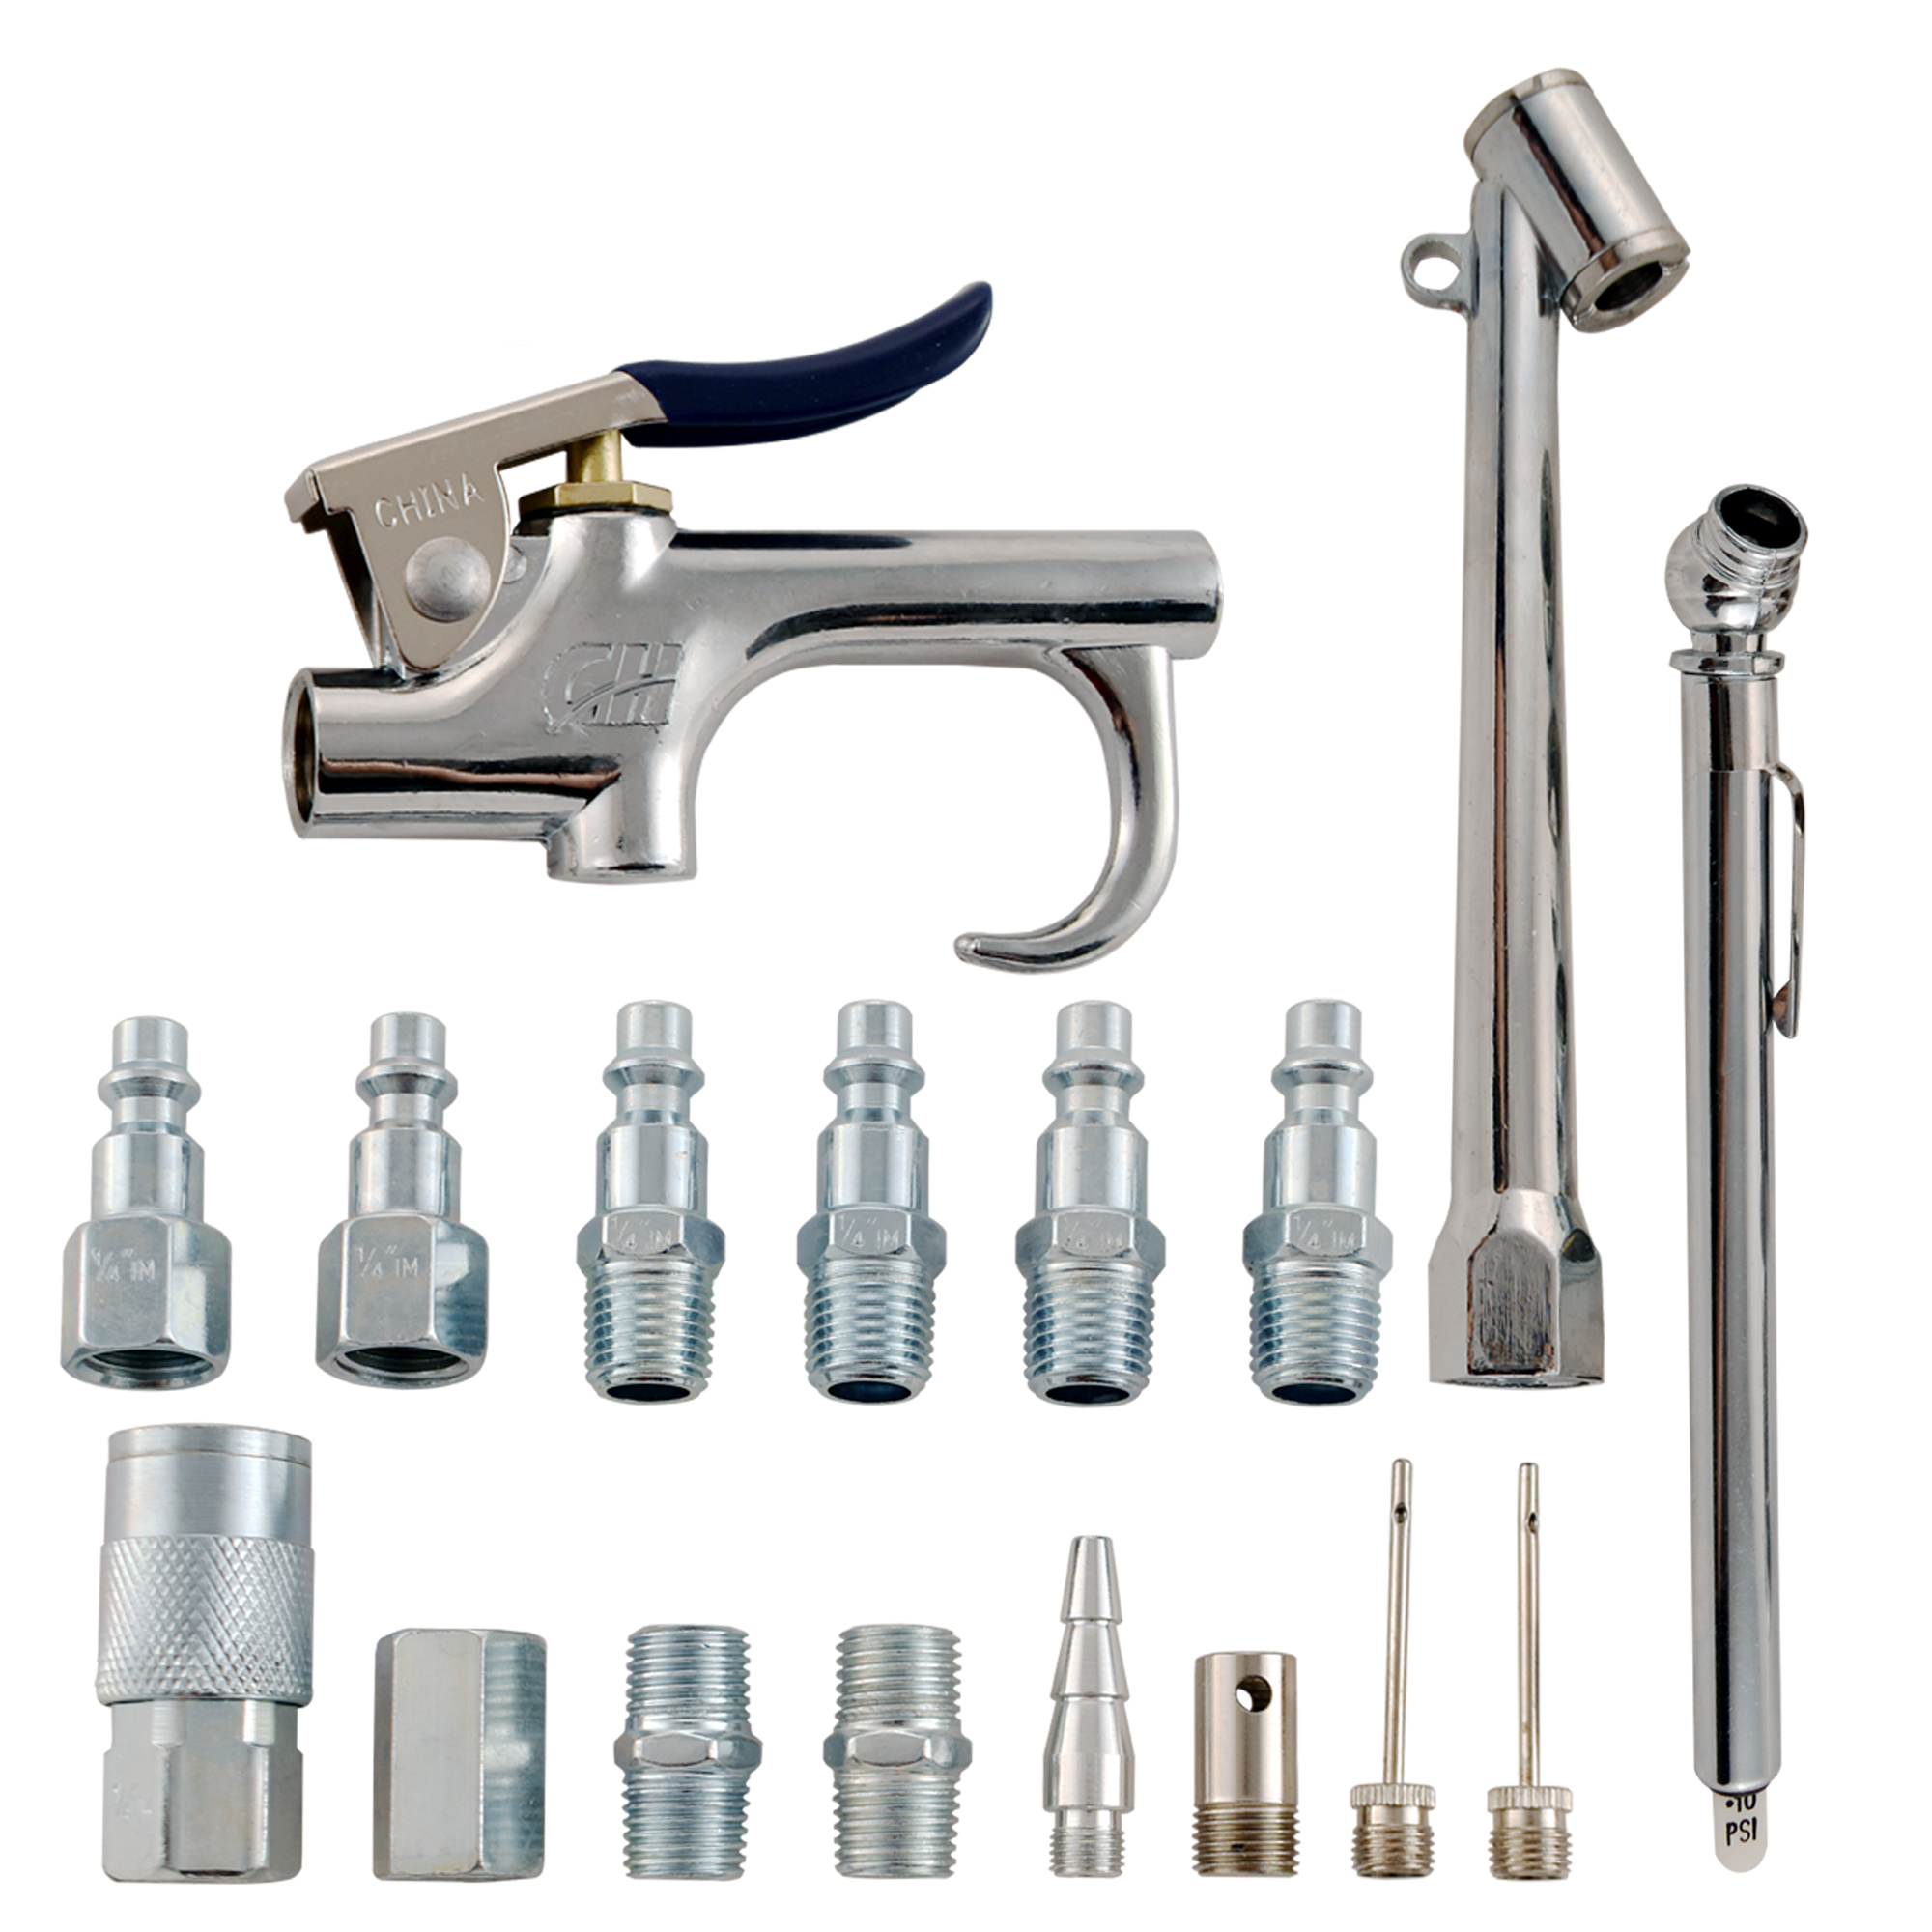 "Campbell Hausfeld Kit, 17-Piece Accessory 1/4"" I/M (MP284701AV) product image center"